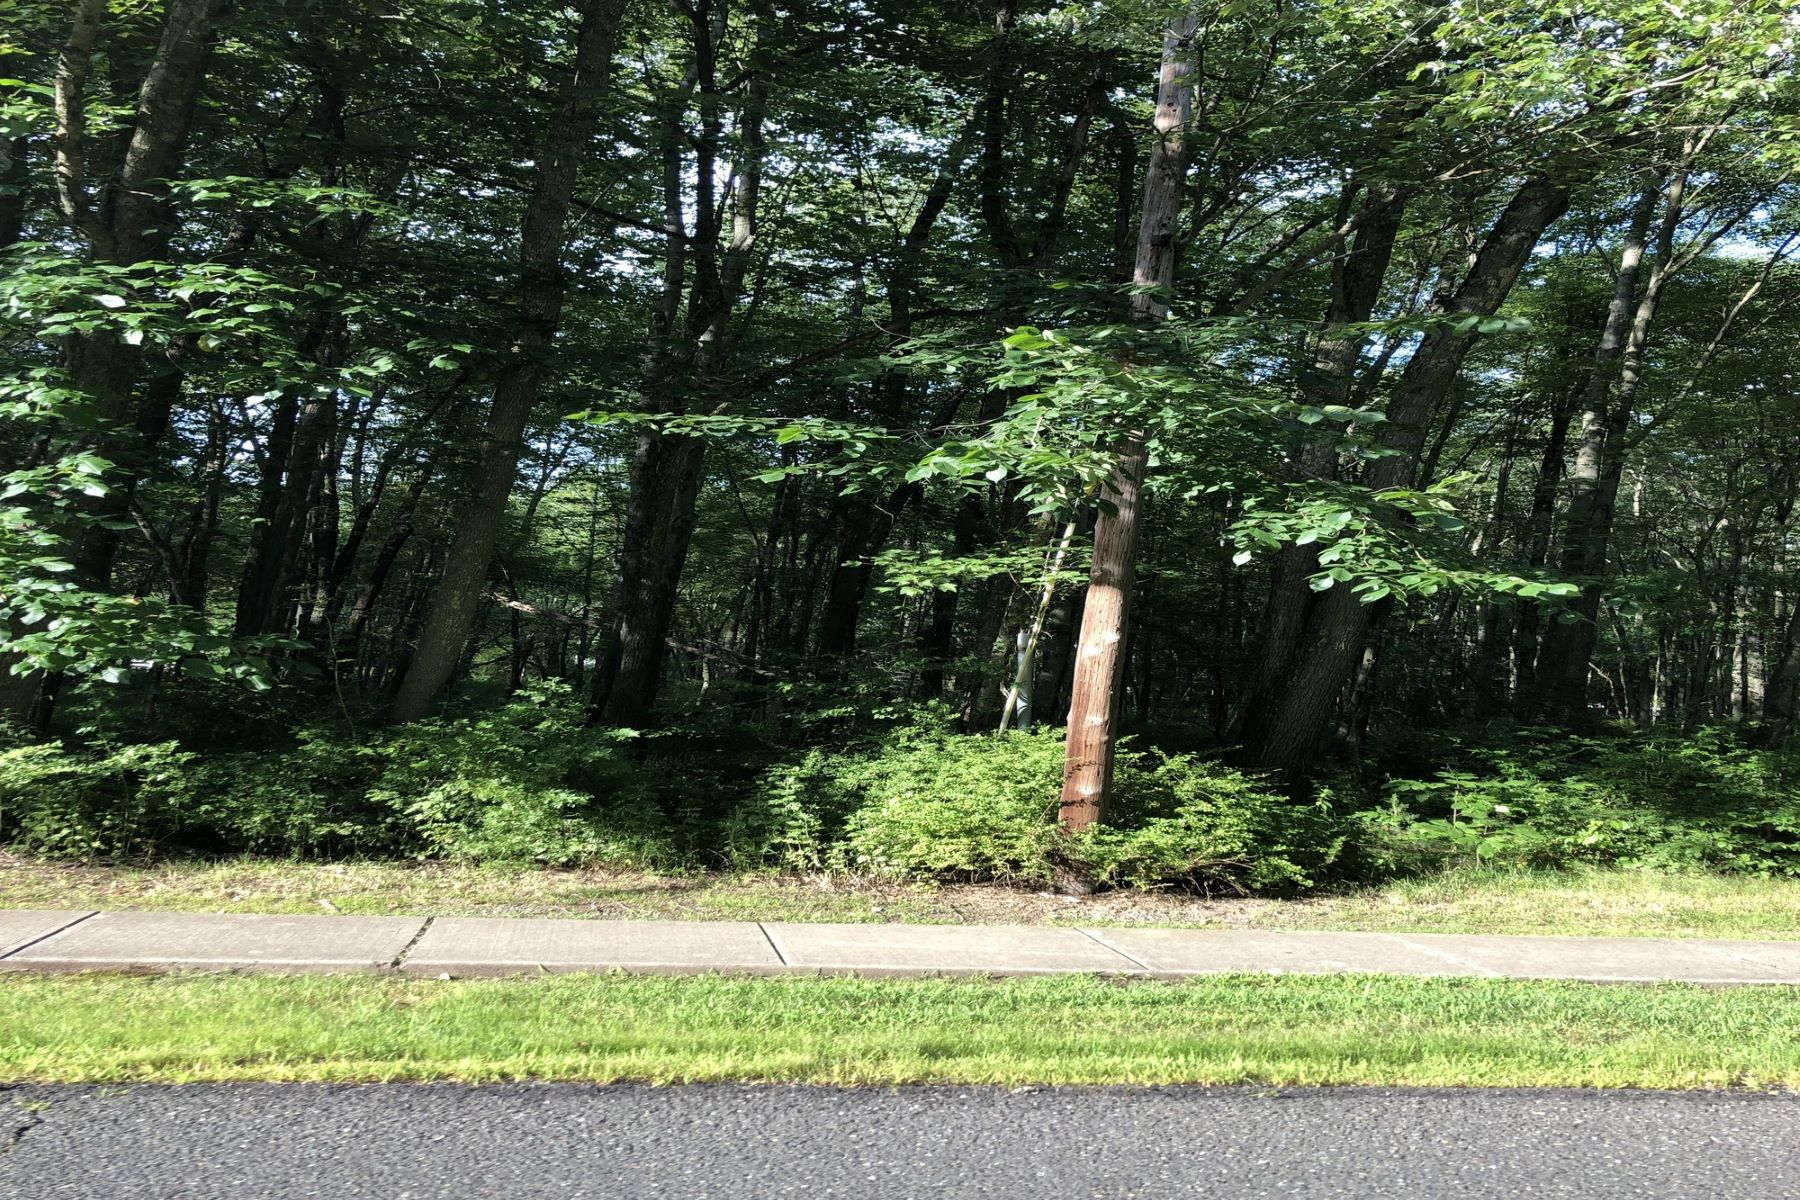 Land for Sale at Build Your Dream Home! 99-111 Mine Brook Road, Basking Ridge, New Jersey 07920 United States